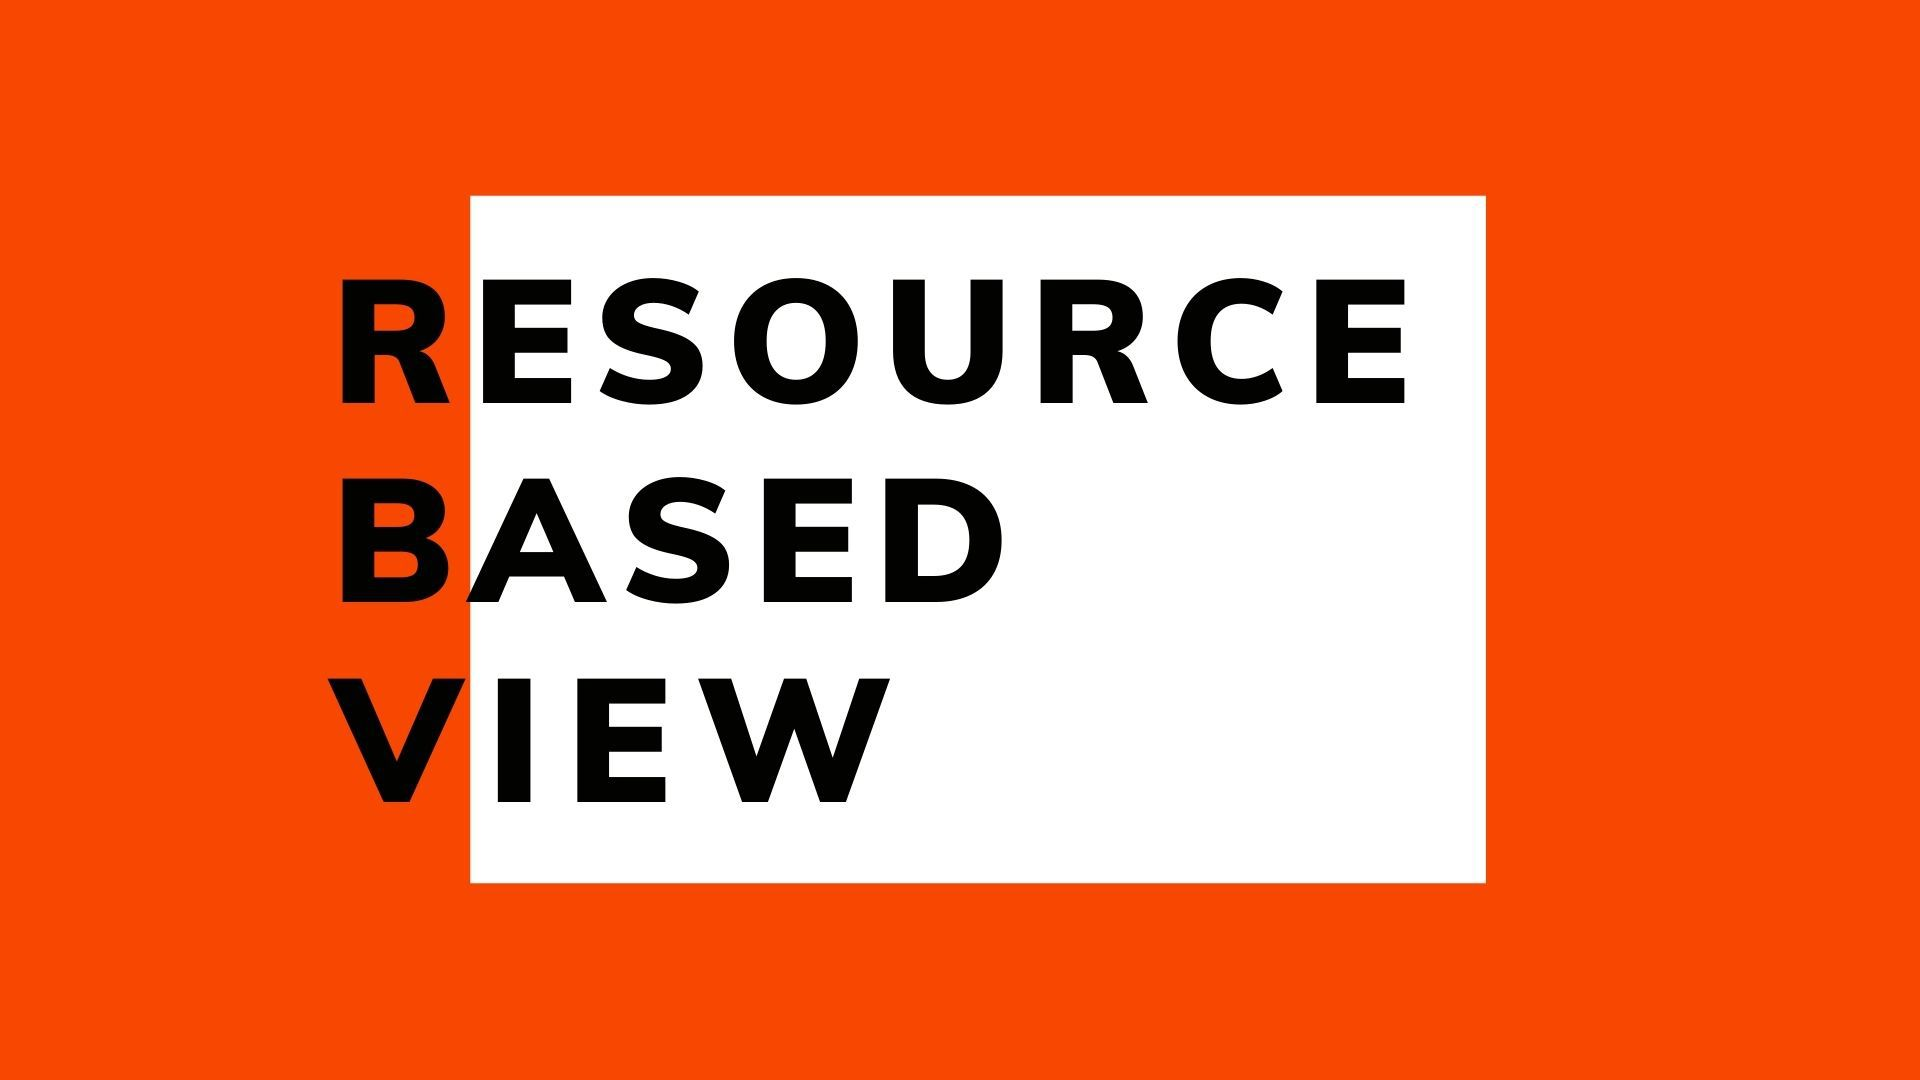 Resource-based view theory